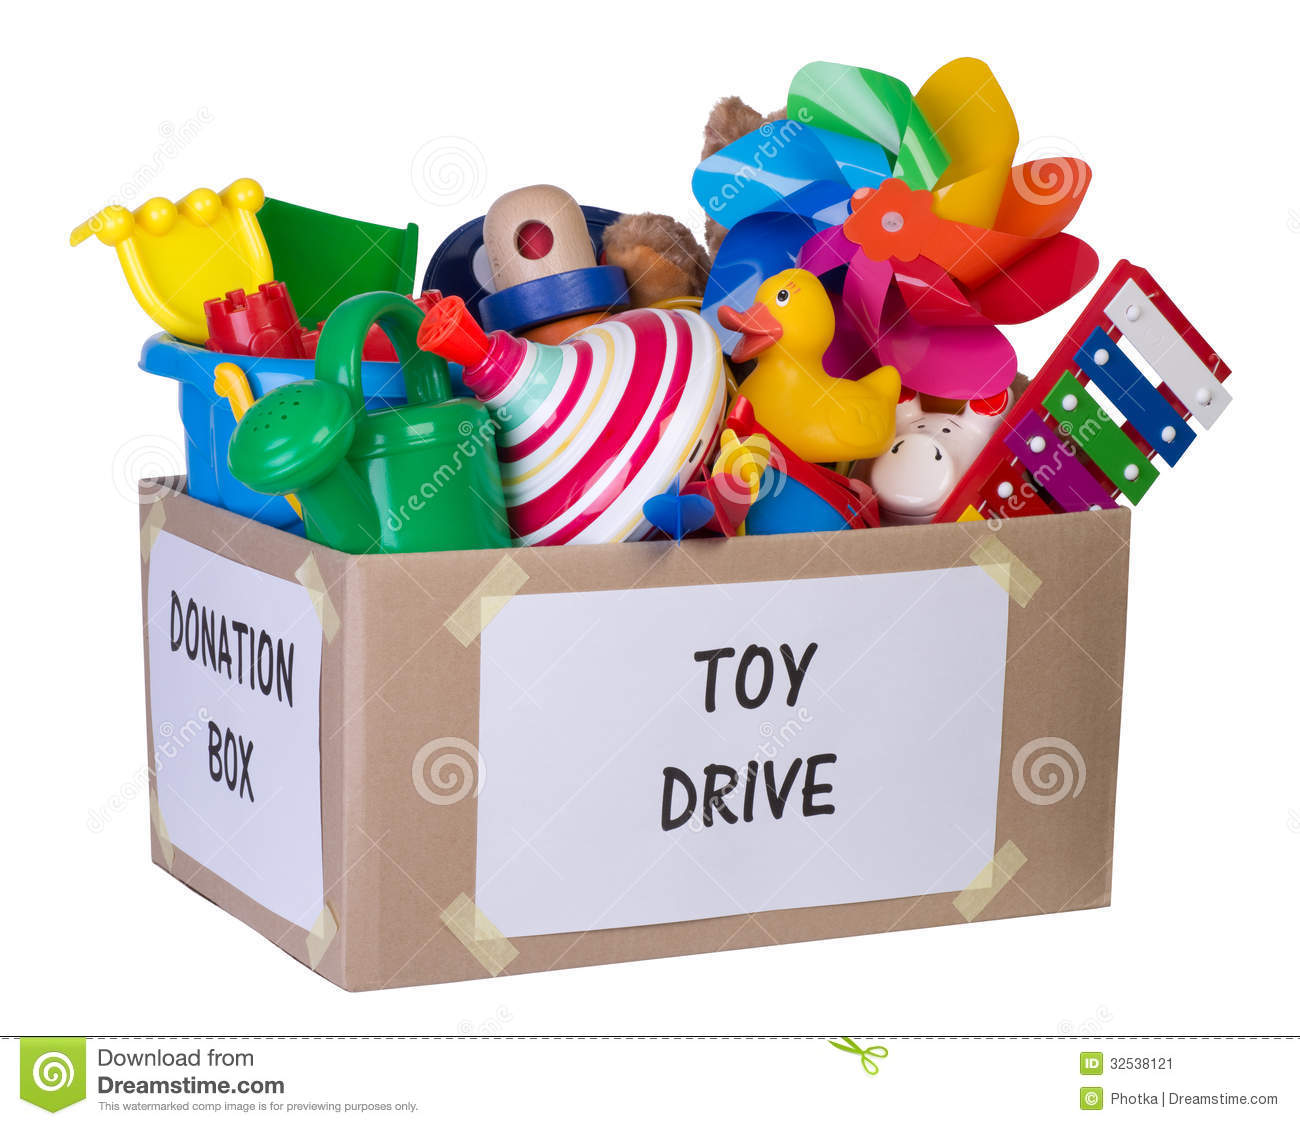 Toy Donation Box Stock Image - Image: 32538121